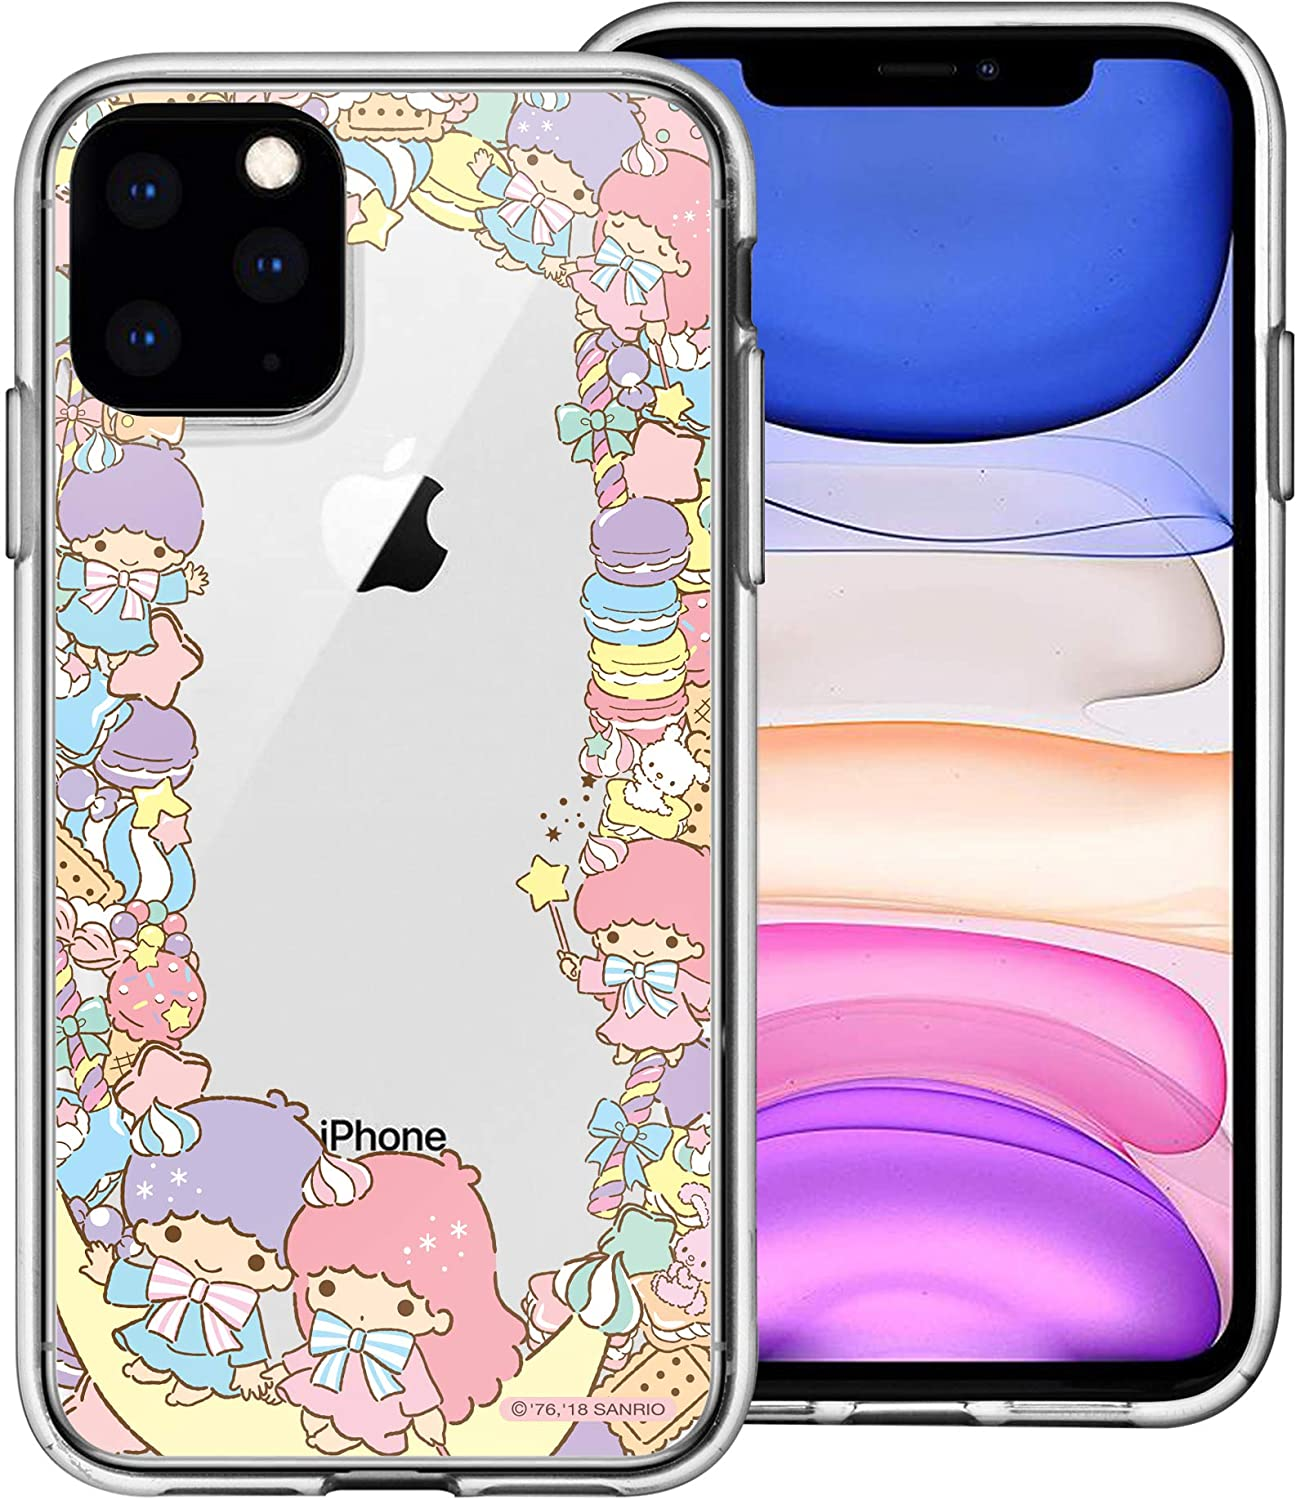 iPhone 11 Case Sanrio Cute Border Clear Jelly Cover [ iPhone 11 (6.1inch) ] Case - Dessert Little Twin Stars